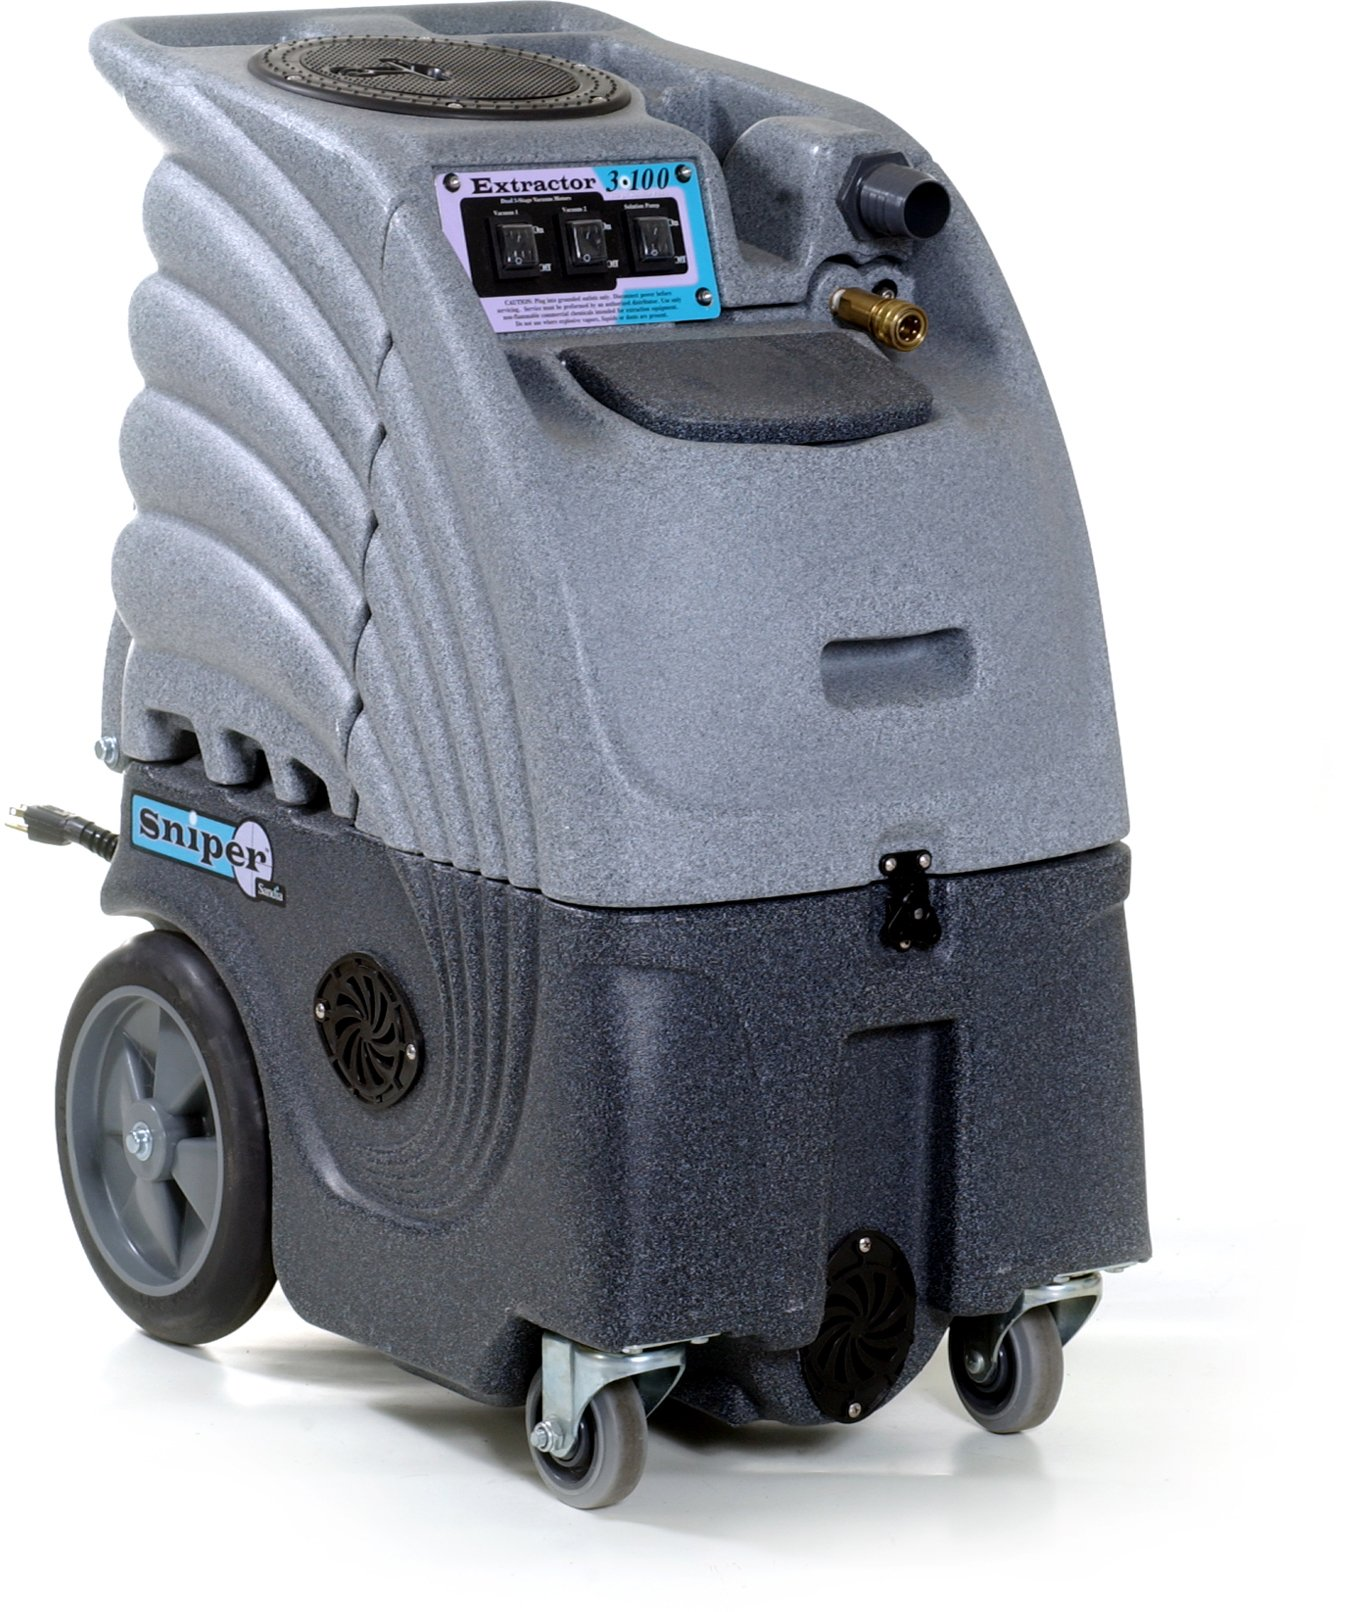 Sandia 86-2100 Dual 2 Stage Vacuum Motor Sniper Commercial Extractor, 6 Gallon Capacity, 100 psi Pump